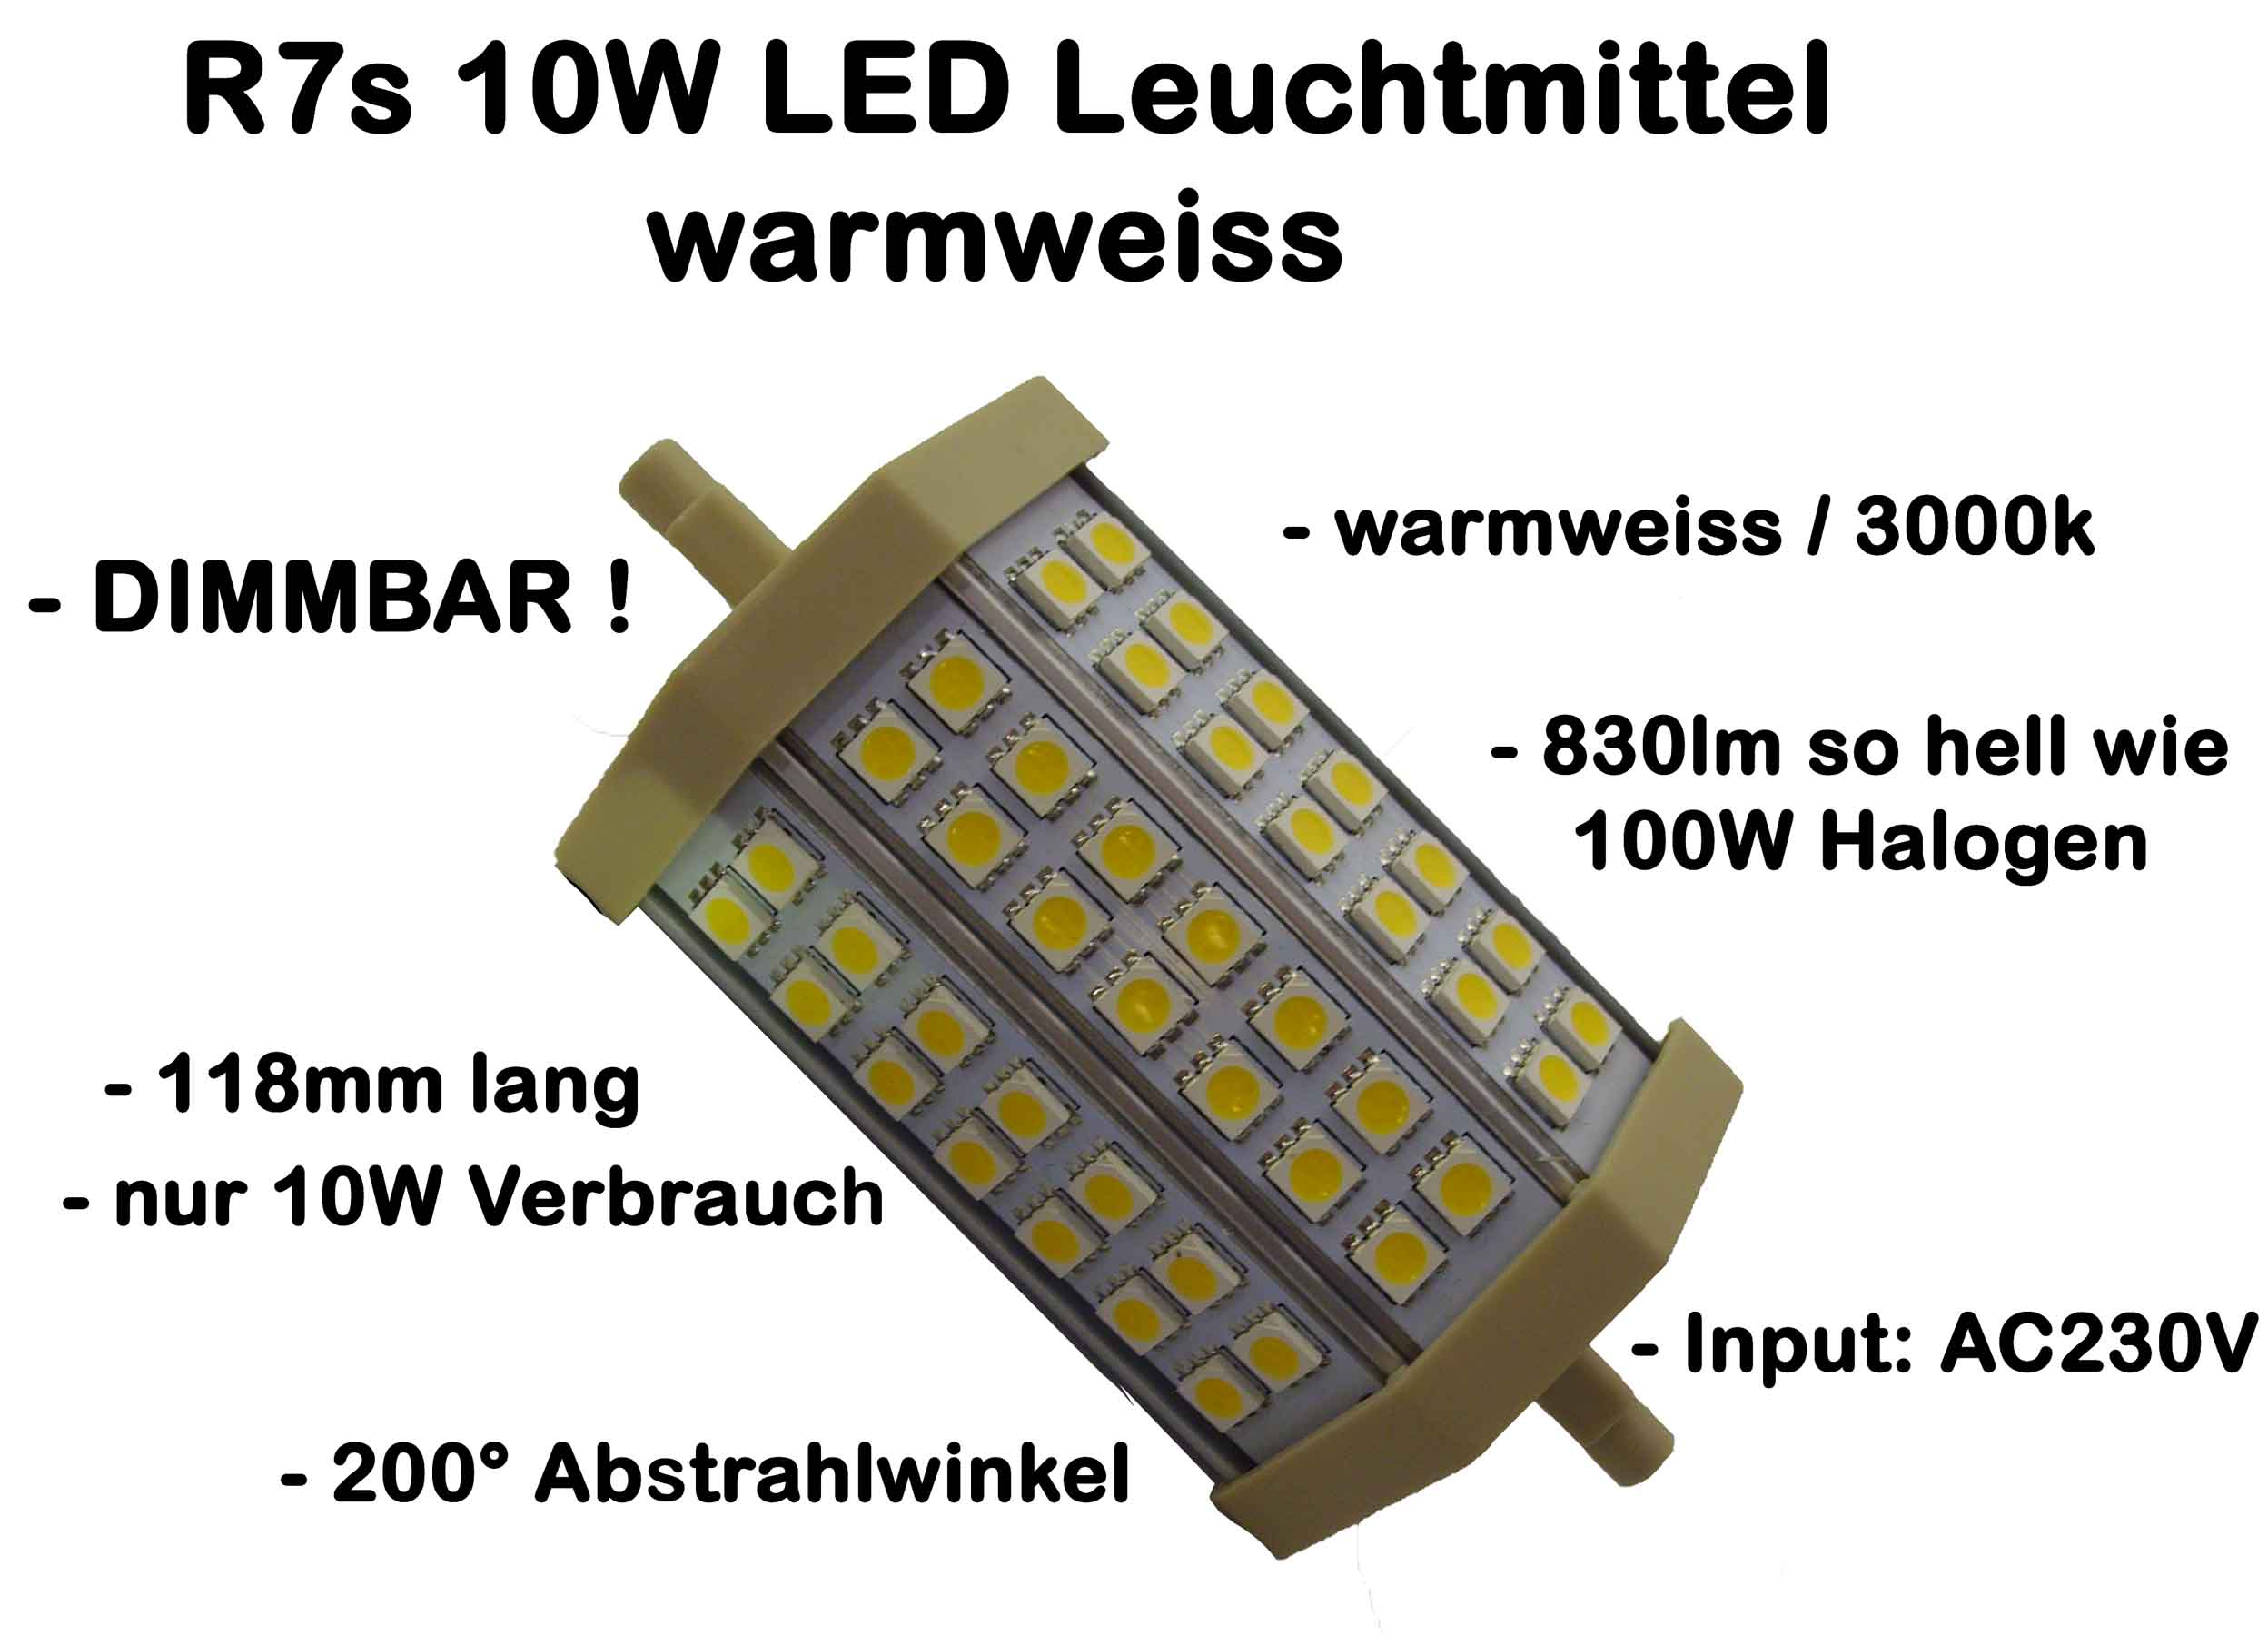 r7s 10w led 5730 118mm leuchtmittel strahler stab 830lm warmweiss ww dimmbar ebay. Black Bedroom Furniture Sets. Home Design Ideas